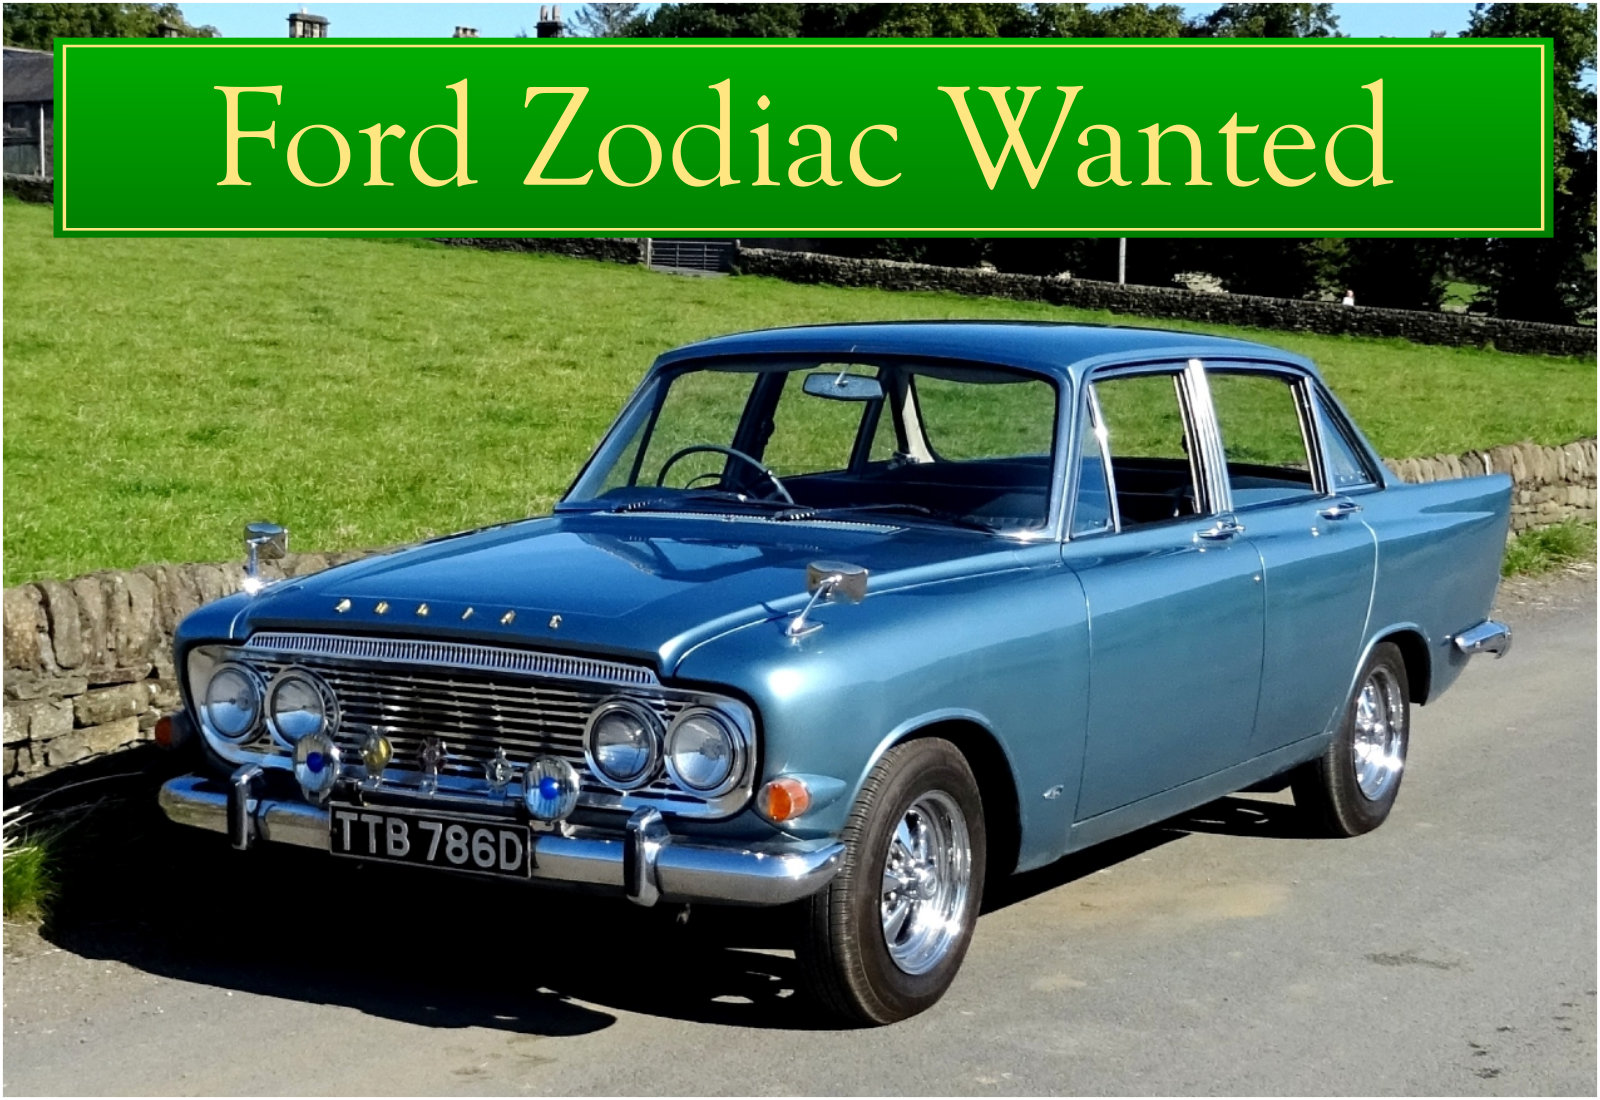 FORD COSWORTH WANTED, CLASSIC CARS WANTED, IMMEDIATE PAYMENT Wanted (picture 5 of 6)